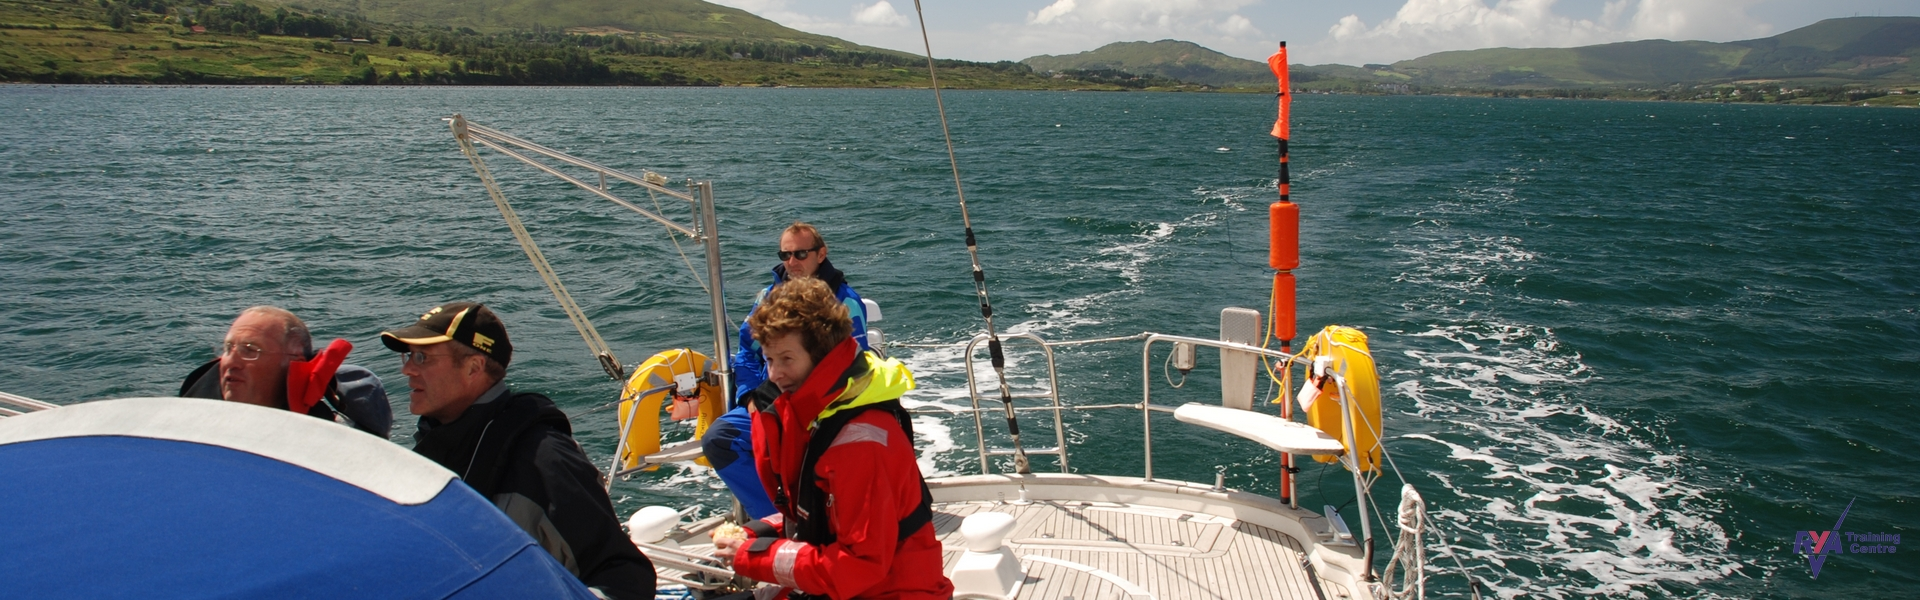 RYA Coastal Skipper Course | West Cork | Ireland